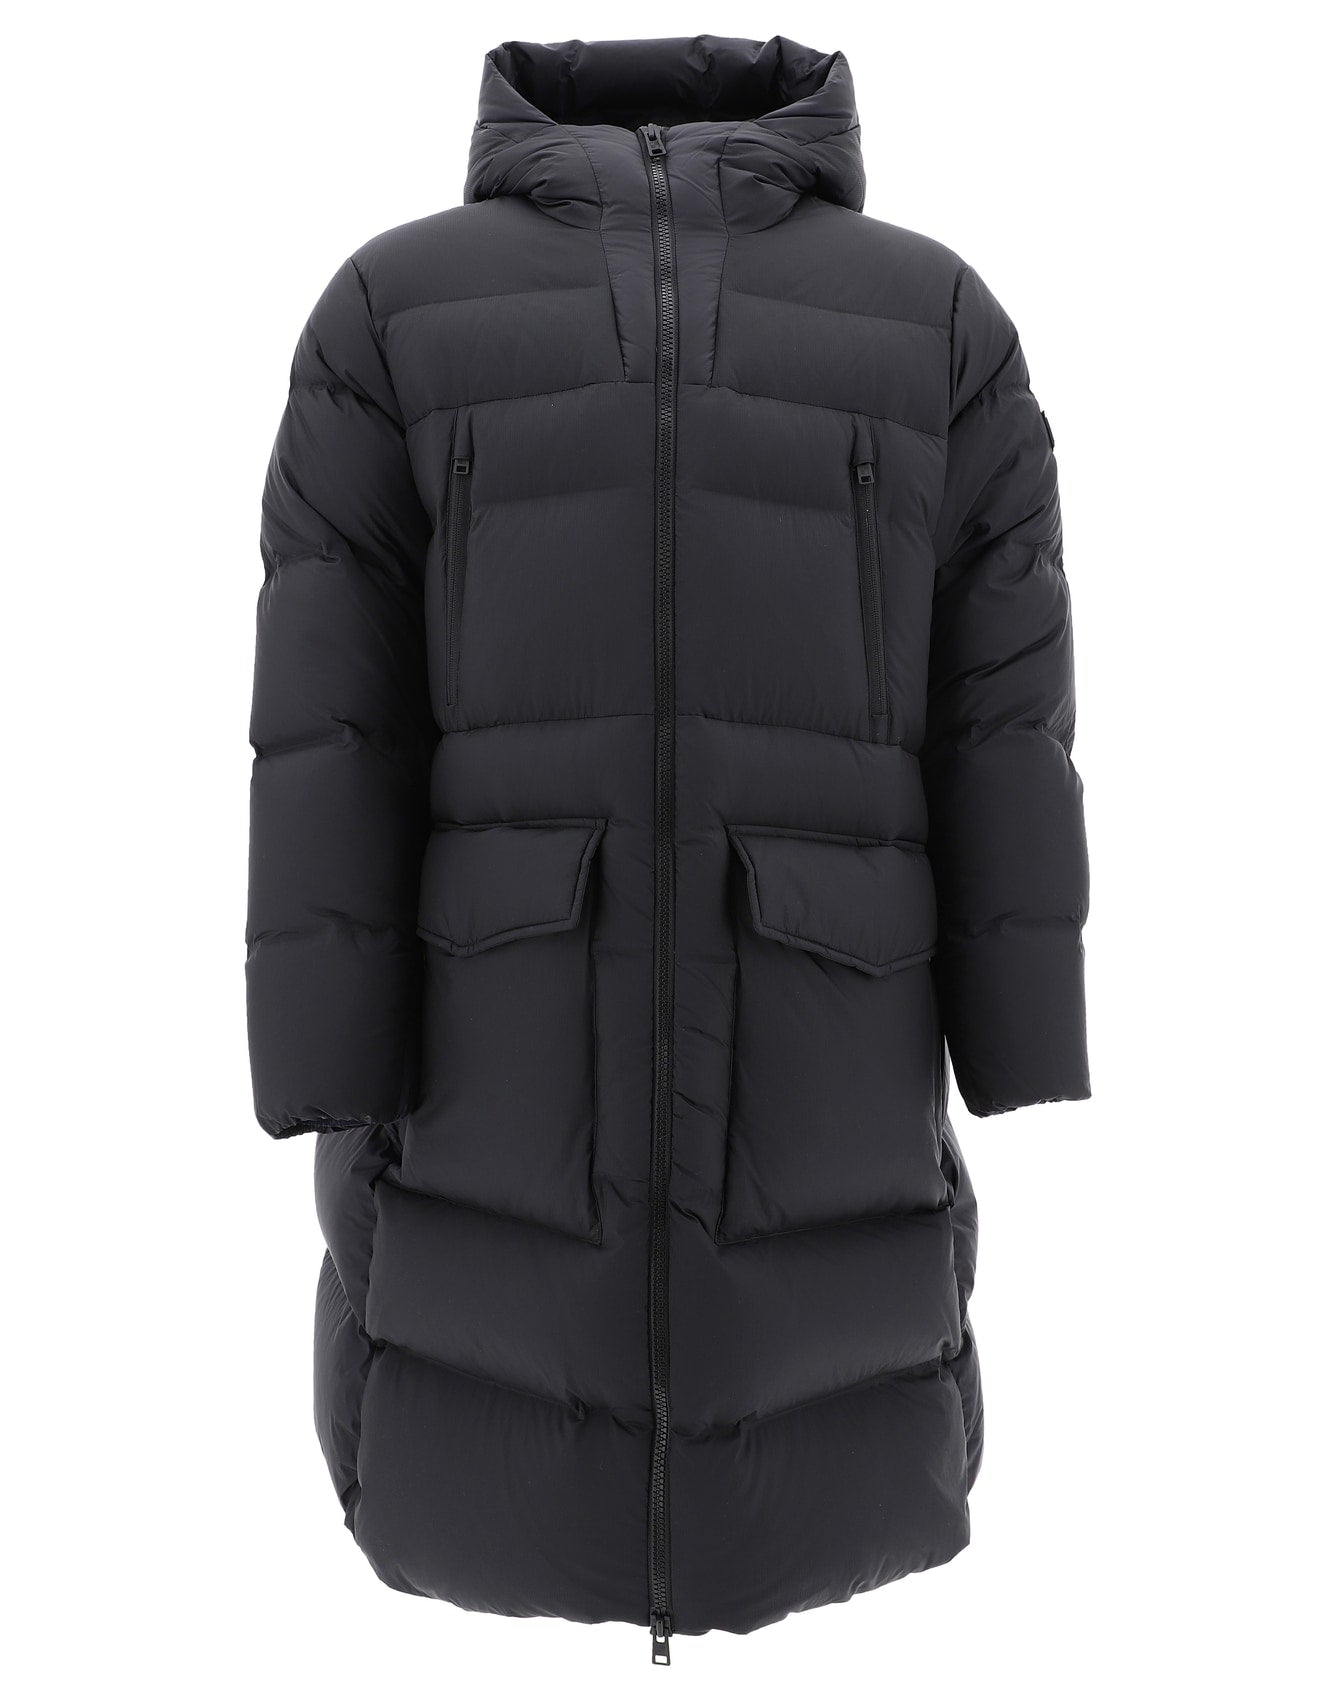 Woolrich Coats WOOLRICH HOODED PARKA COAT